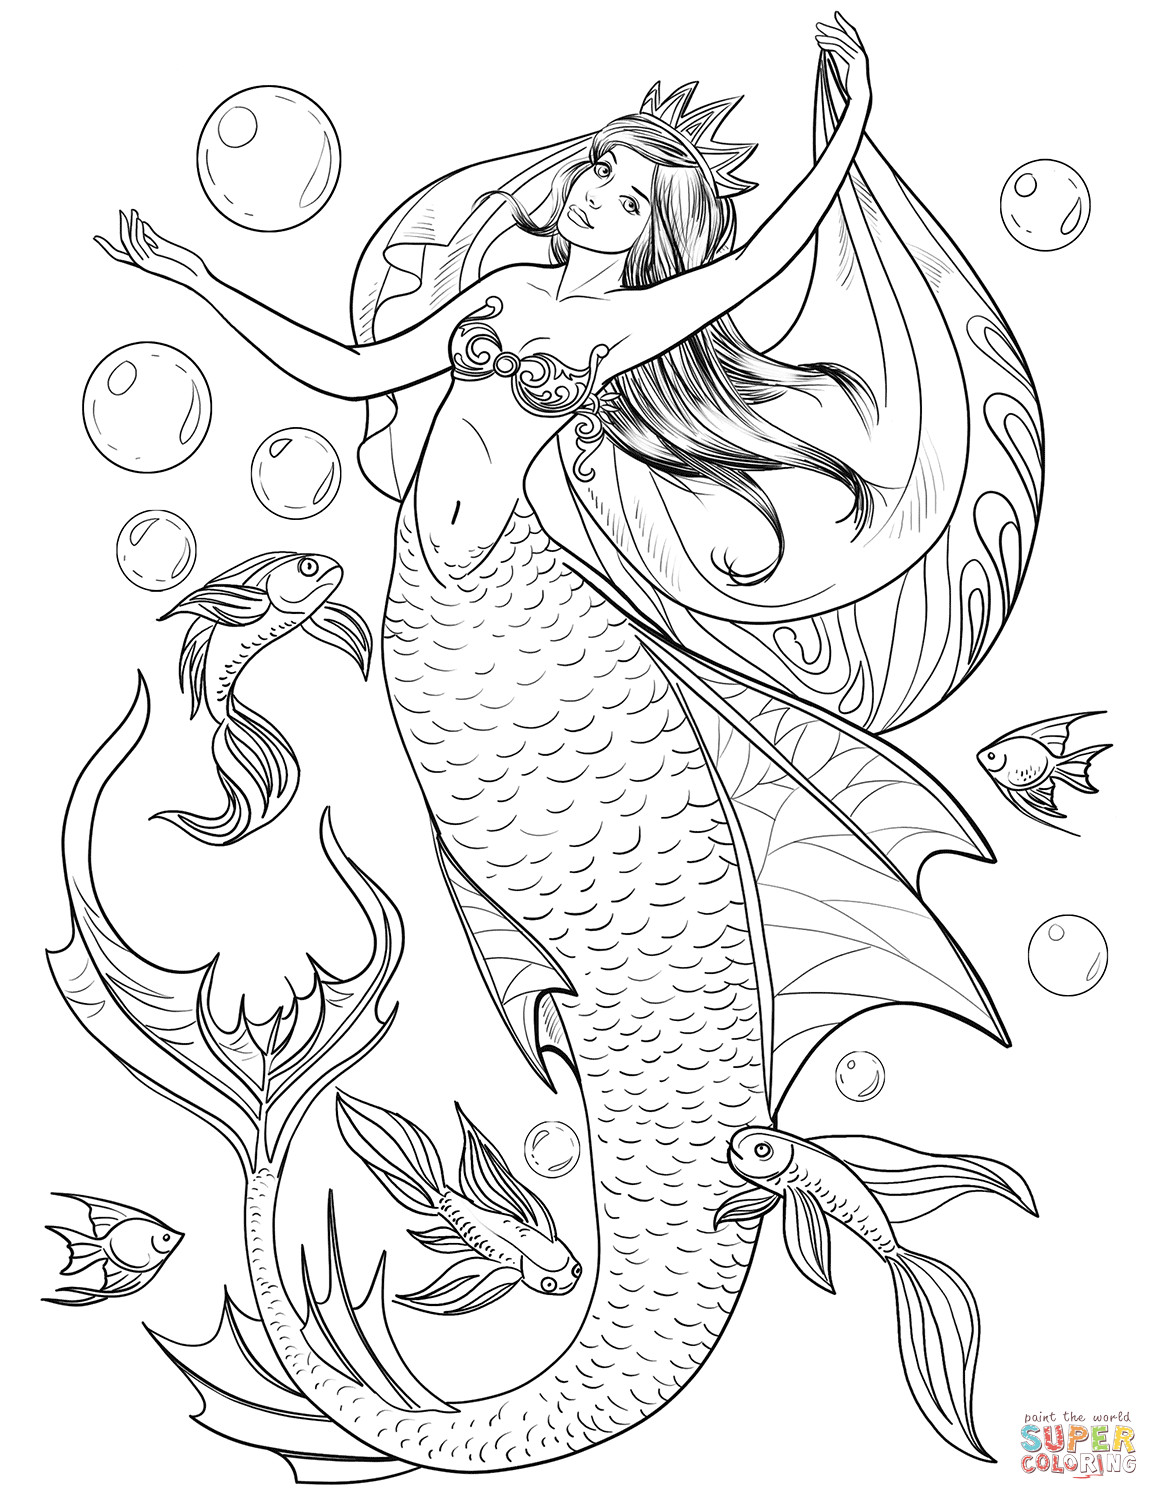 Printable Mermaid Coloring Pages For Girls  Mermaid coloring page